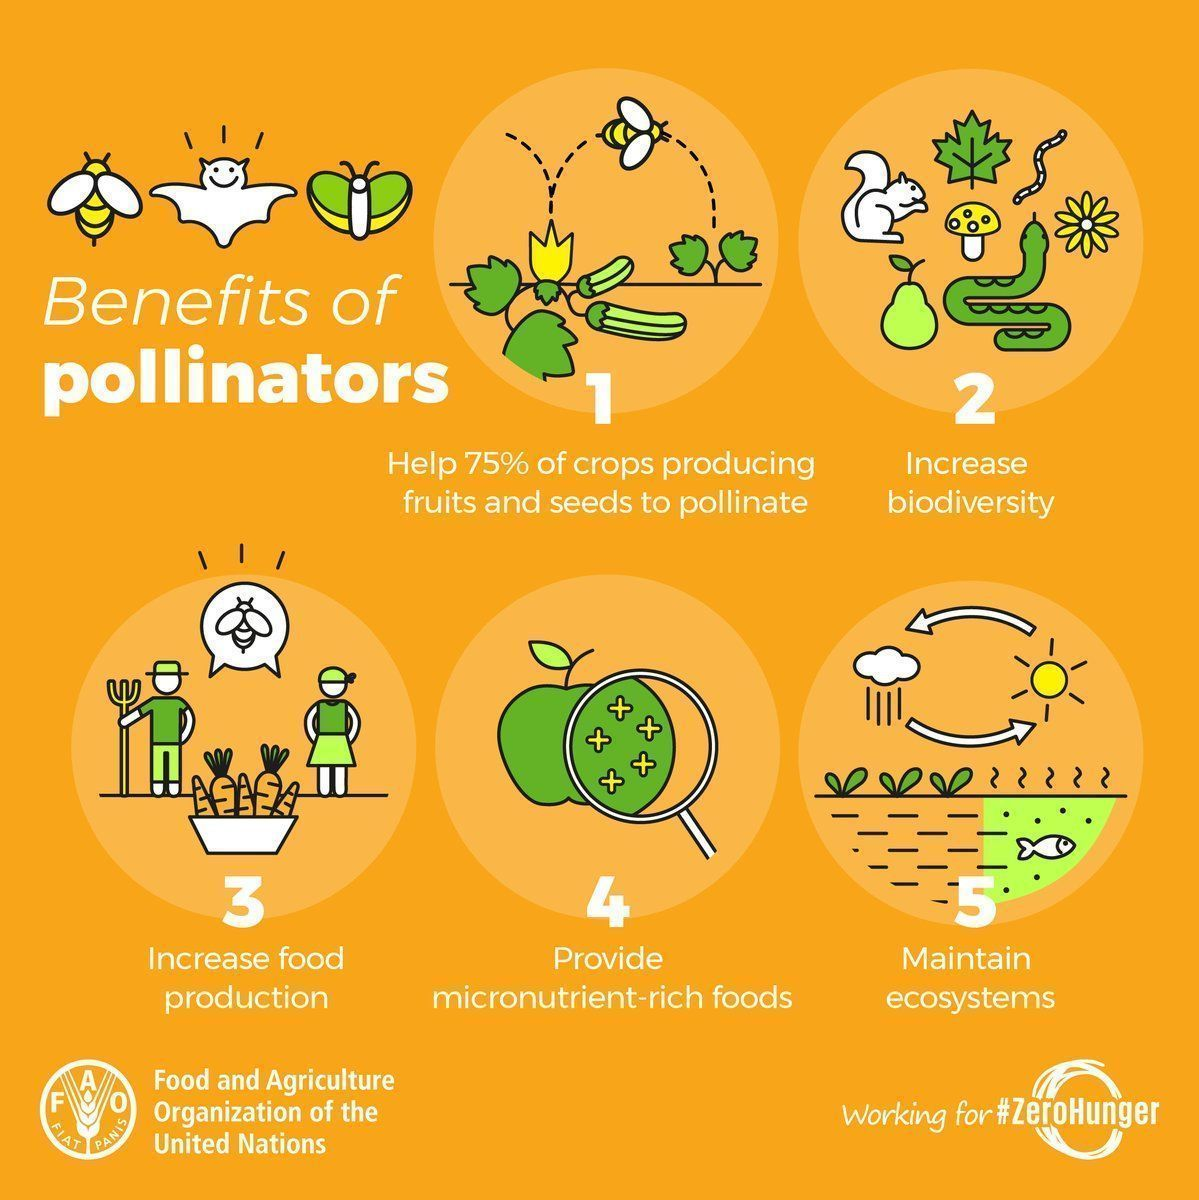 Bees and other #pollinators are threatened with extinction. Yet they are vital to life on our planet.  Here are just 5 reasons why we need to protect our pollinators 👇   #ZeroHunger #bees https://t.co/NSm0xOsul2